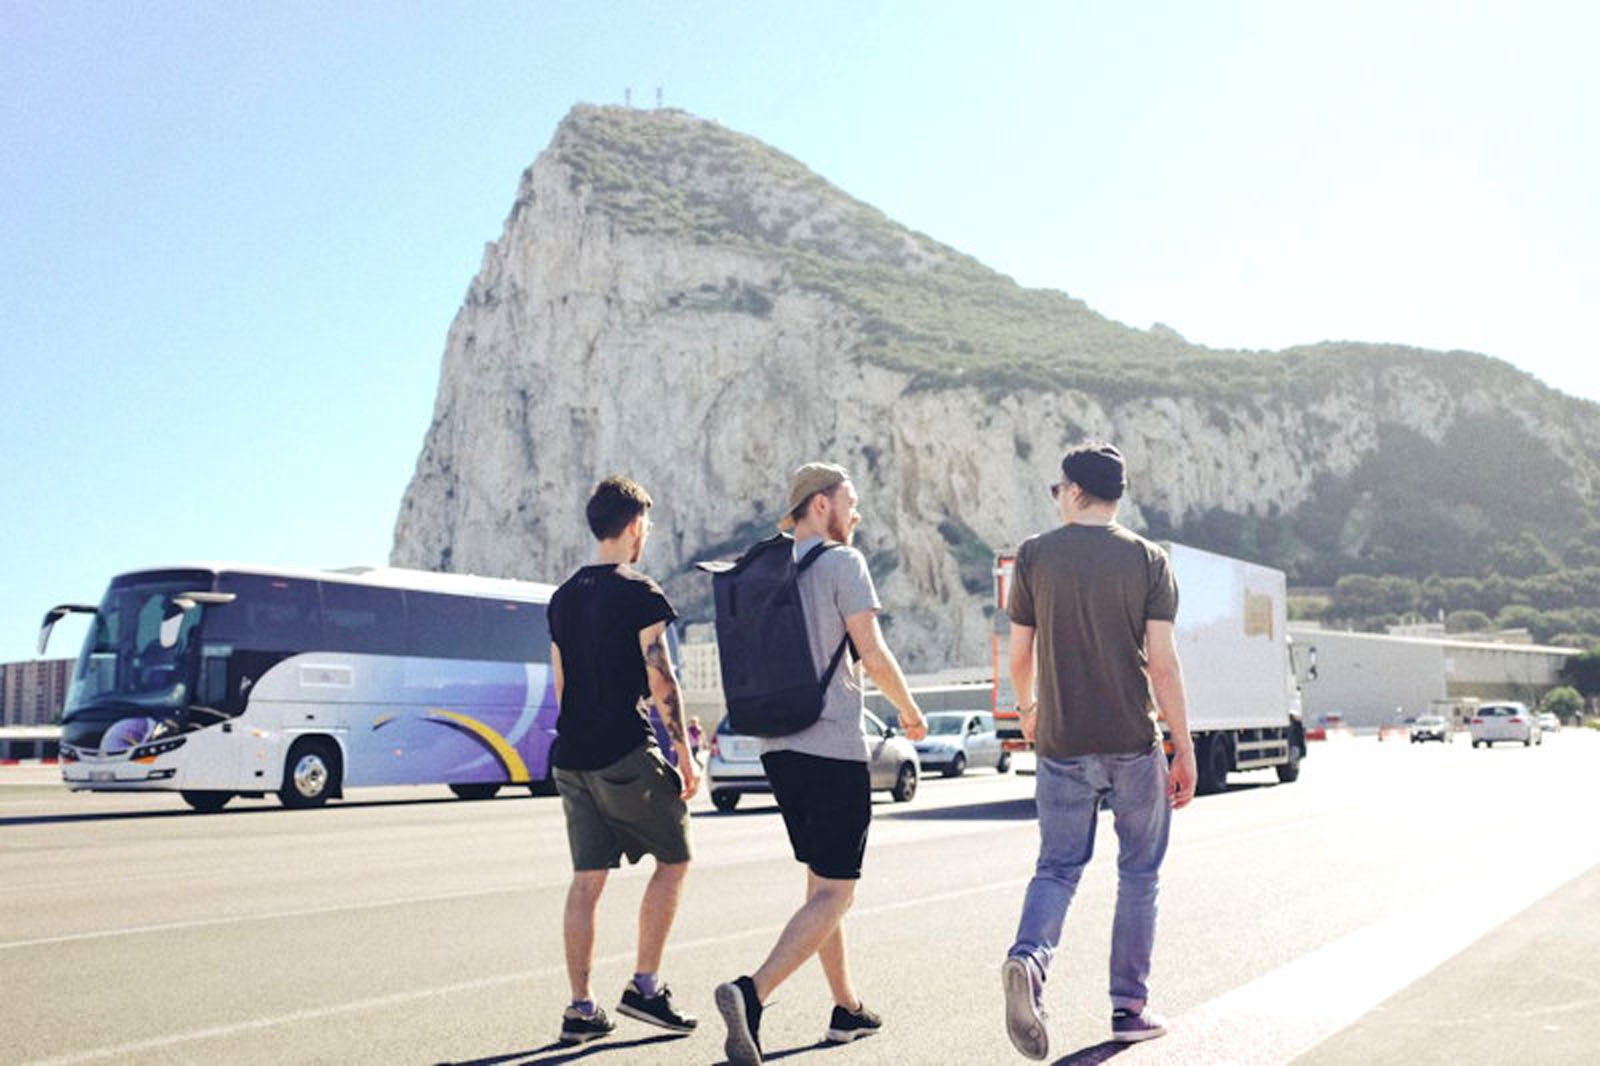 Walk over the border from Spain into Gibraltar